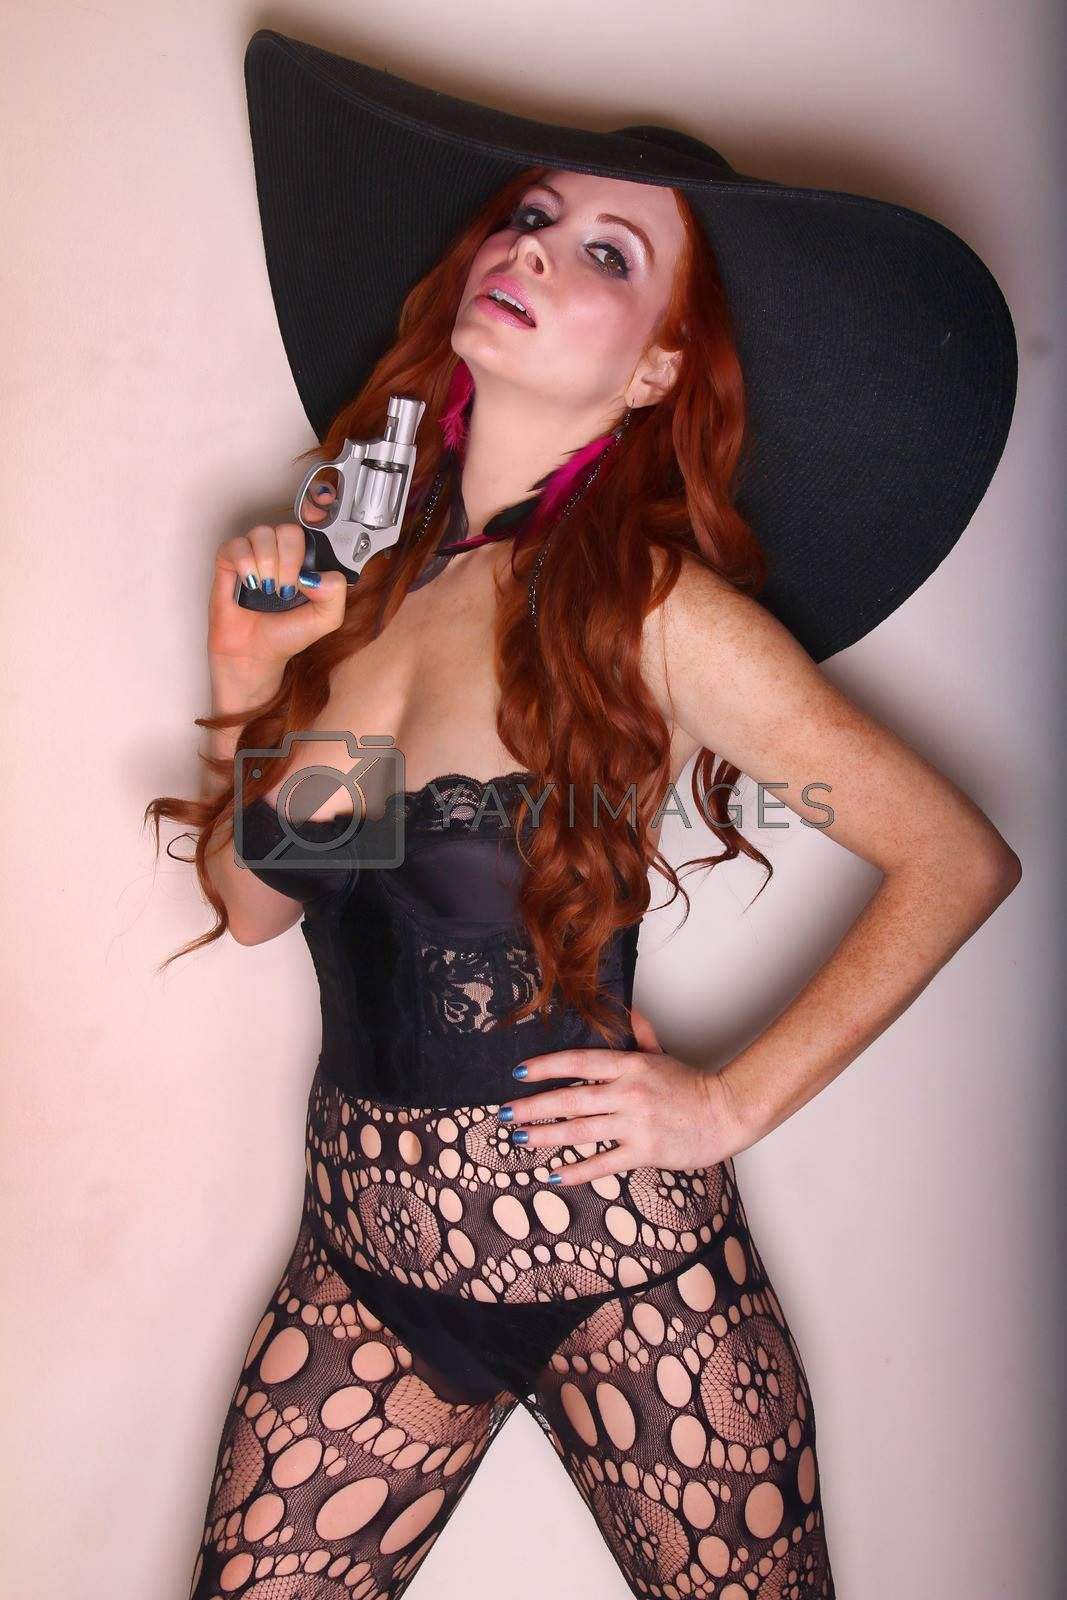 """Phoebe Price photo shoot for Phoebe Price Designs New Spring Summer Collection, appearing in the new season of """"Celebrity Apprentice,"""" Private Location, Beverly Hills, CA 03-25-12 EXCLUSIVE"""